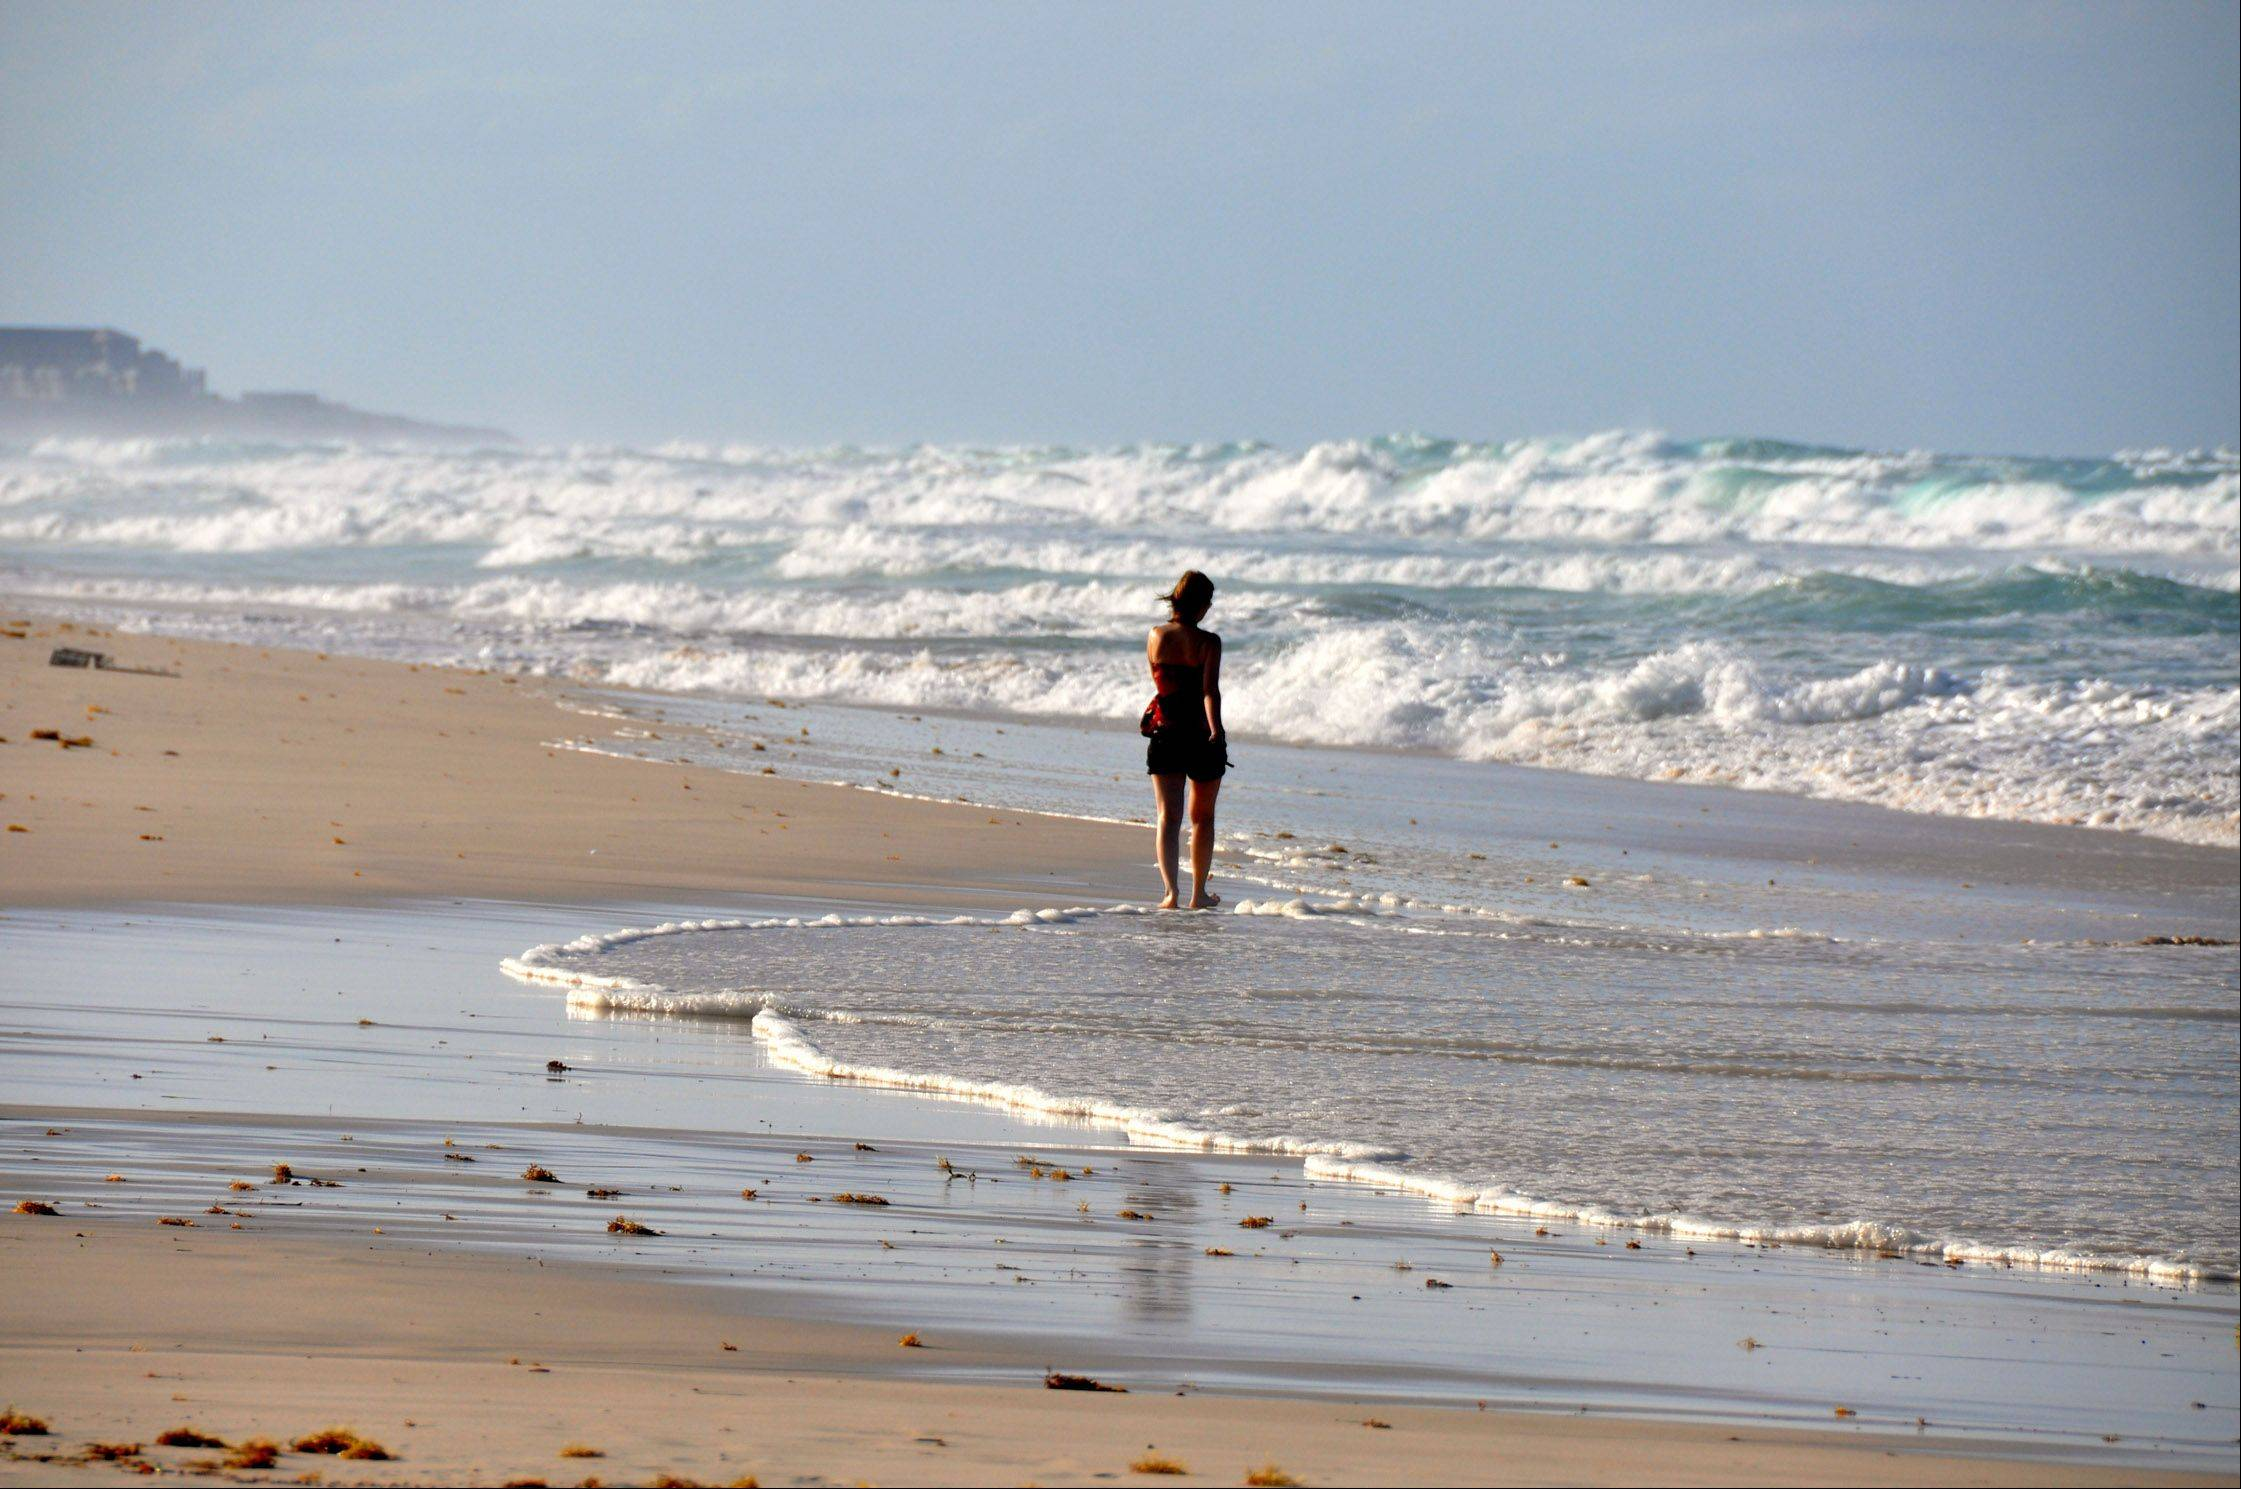 A woman walks along the beach in Puta Cana, Dominican Republic last month.